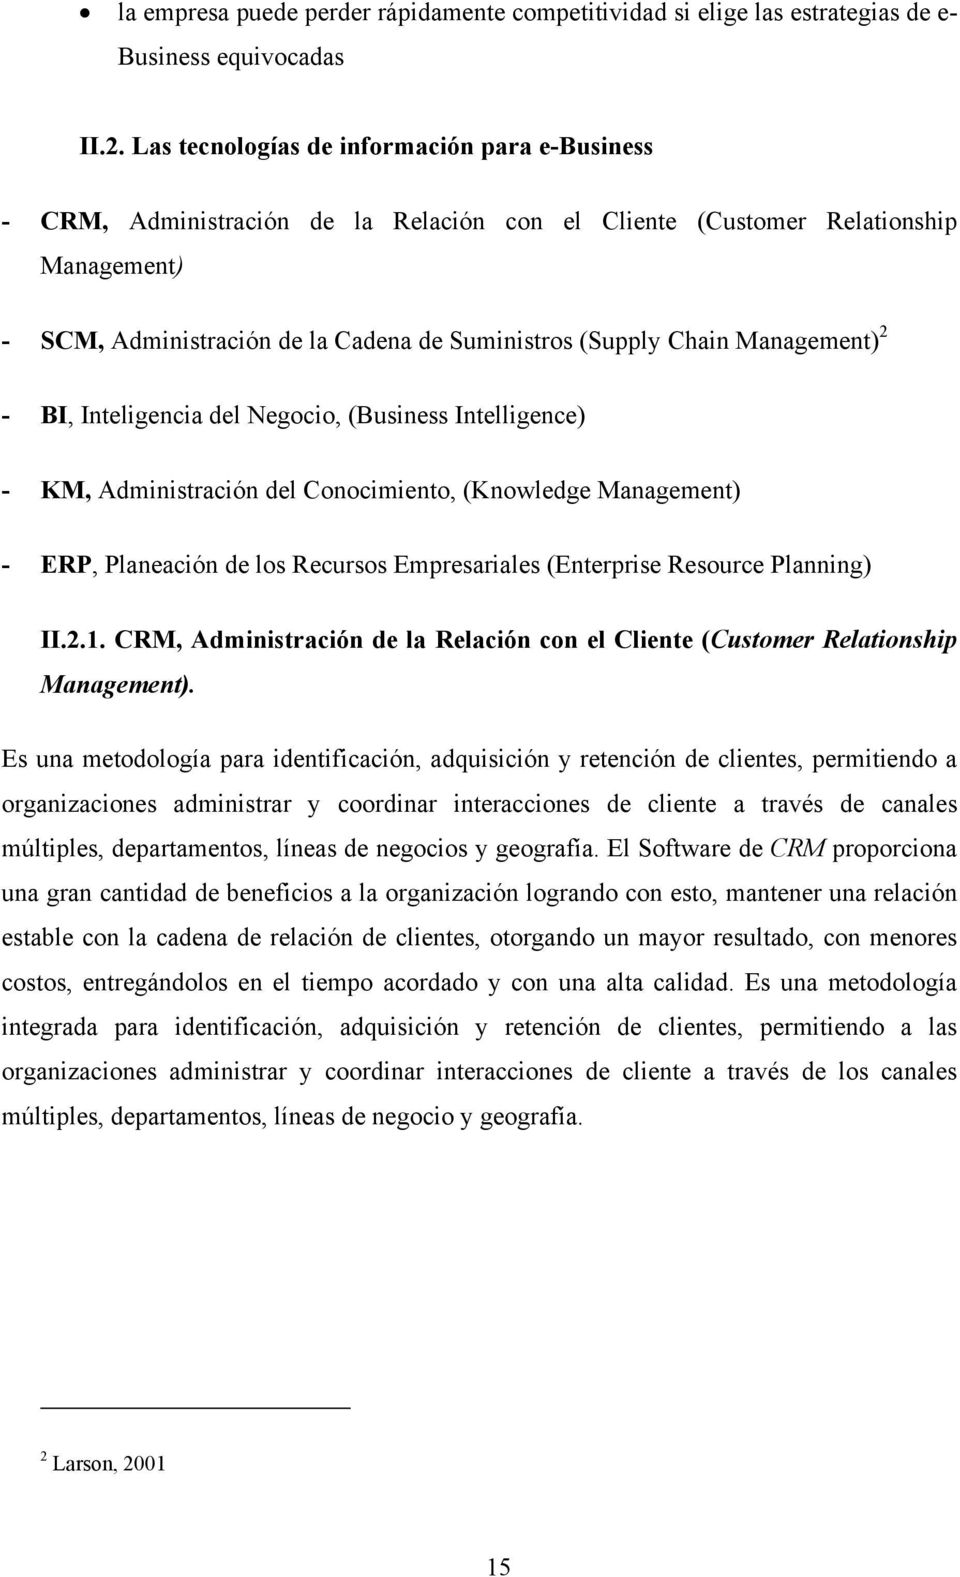 Management) 2 - BI, Inteligencia del Negocio, (Business Intelligence) - KM, Administración del Conocimiento, (Knowledge Management) - ERP, Planeación de los Recursos Empresariales (Enterprise